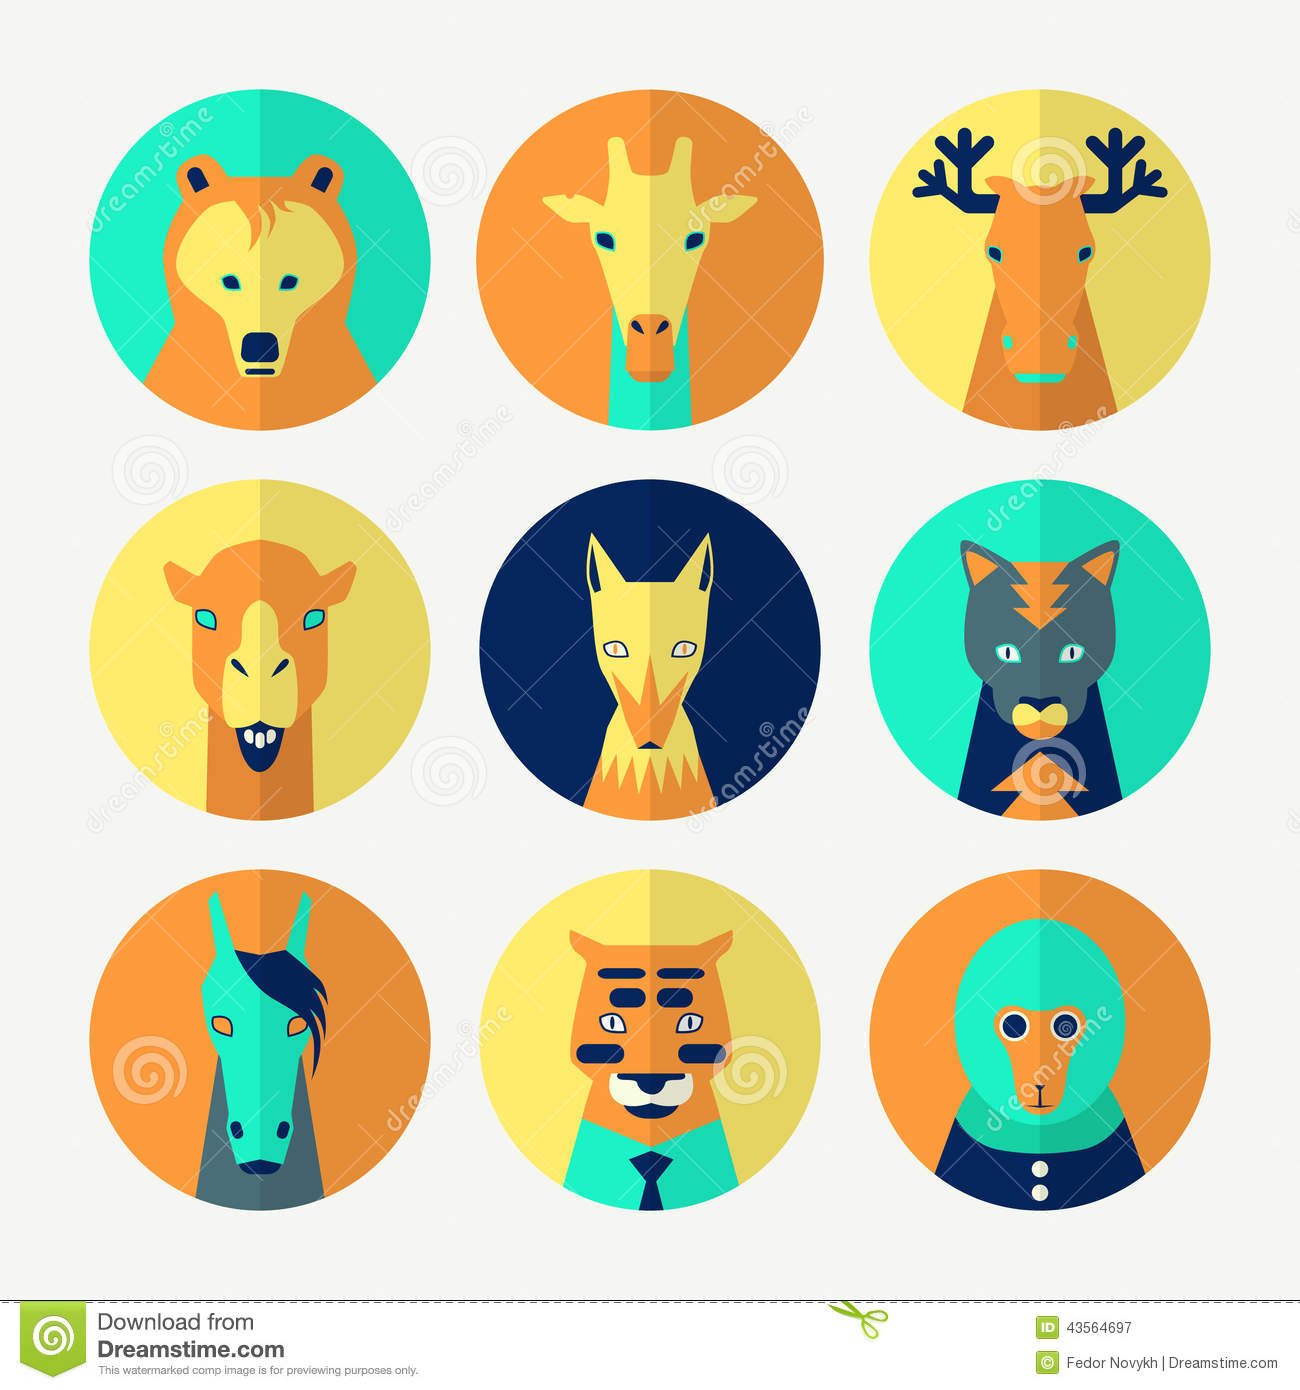 Avatar 2 Animals: Set Of Stylized Animal Avatar Stock Photo